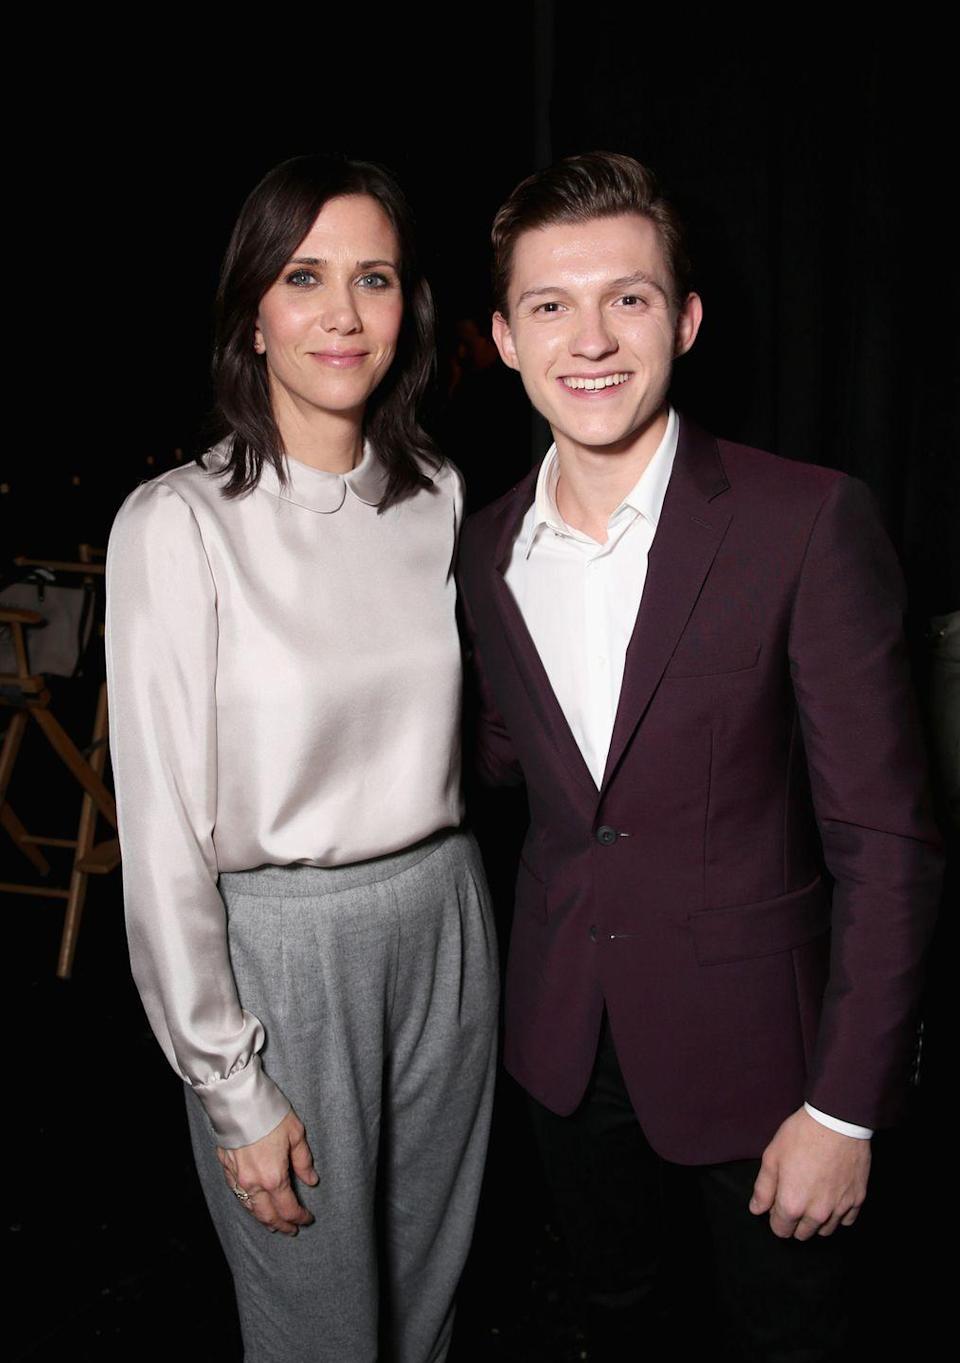 <p>Kristen Wiig and Tom Holland attend CinemaCon 2016 An Evening with Sony Pictures Entertainment on April 12, 2016 in Las Vegas, Nevada.</p>